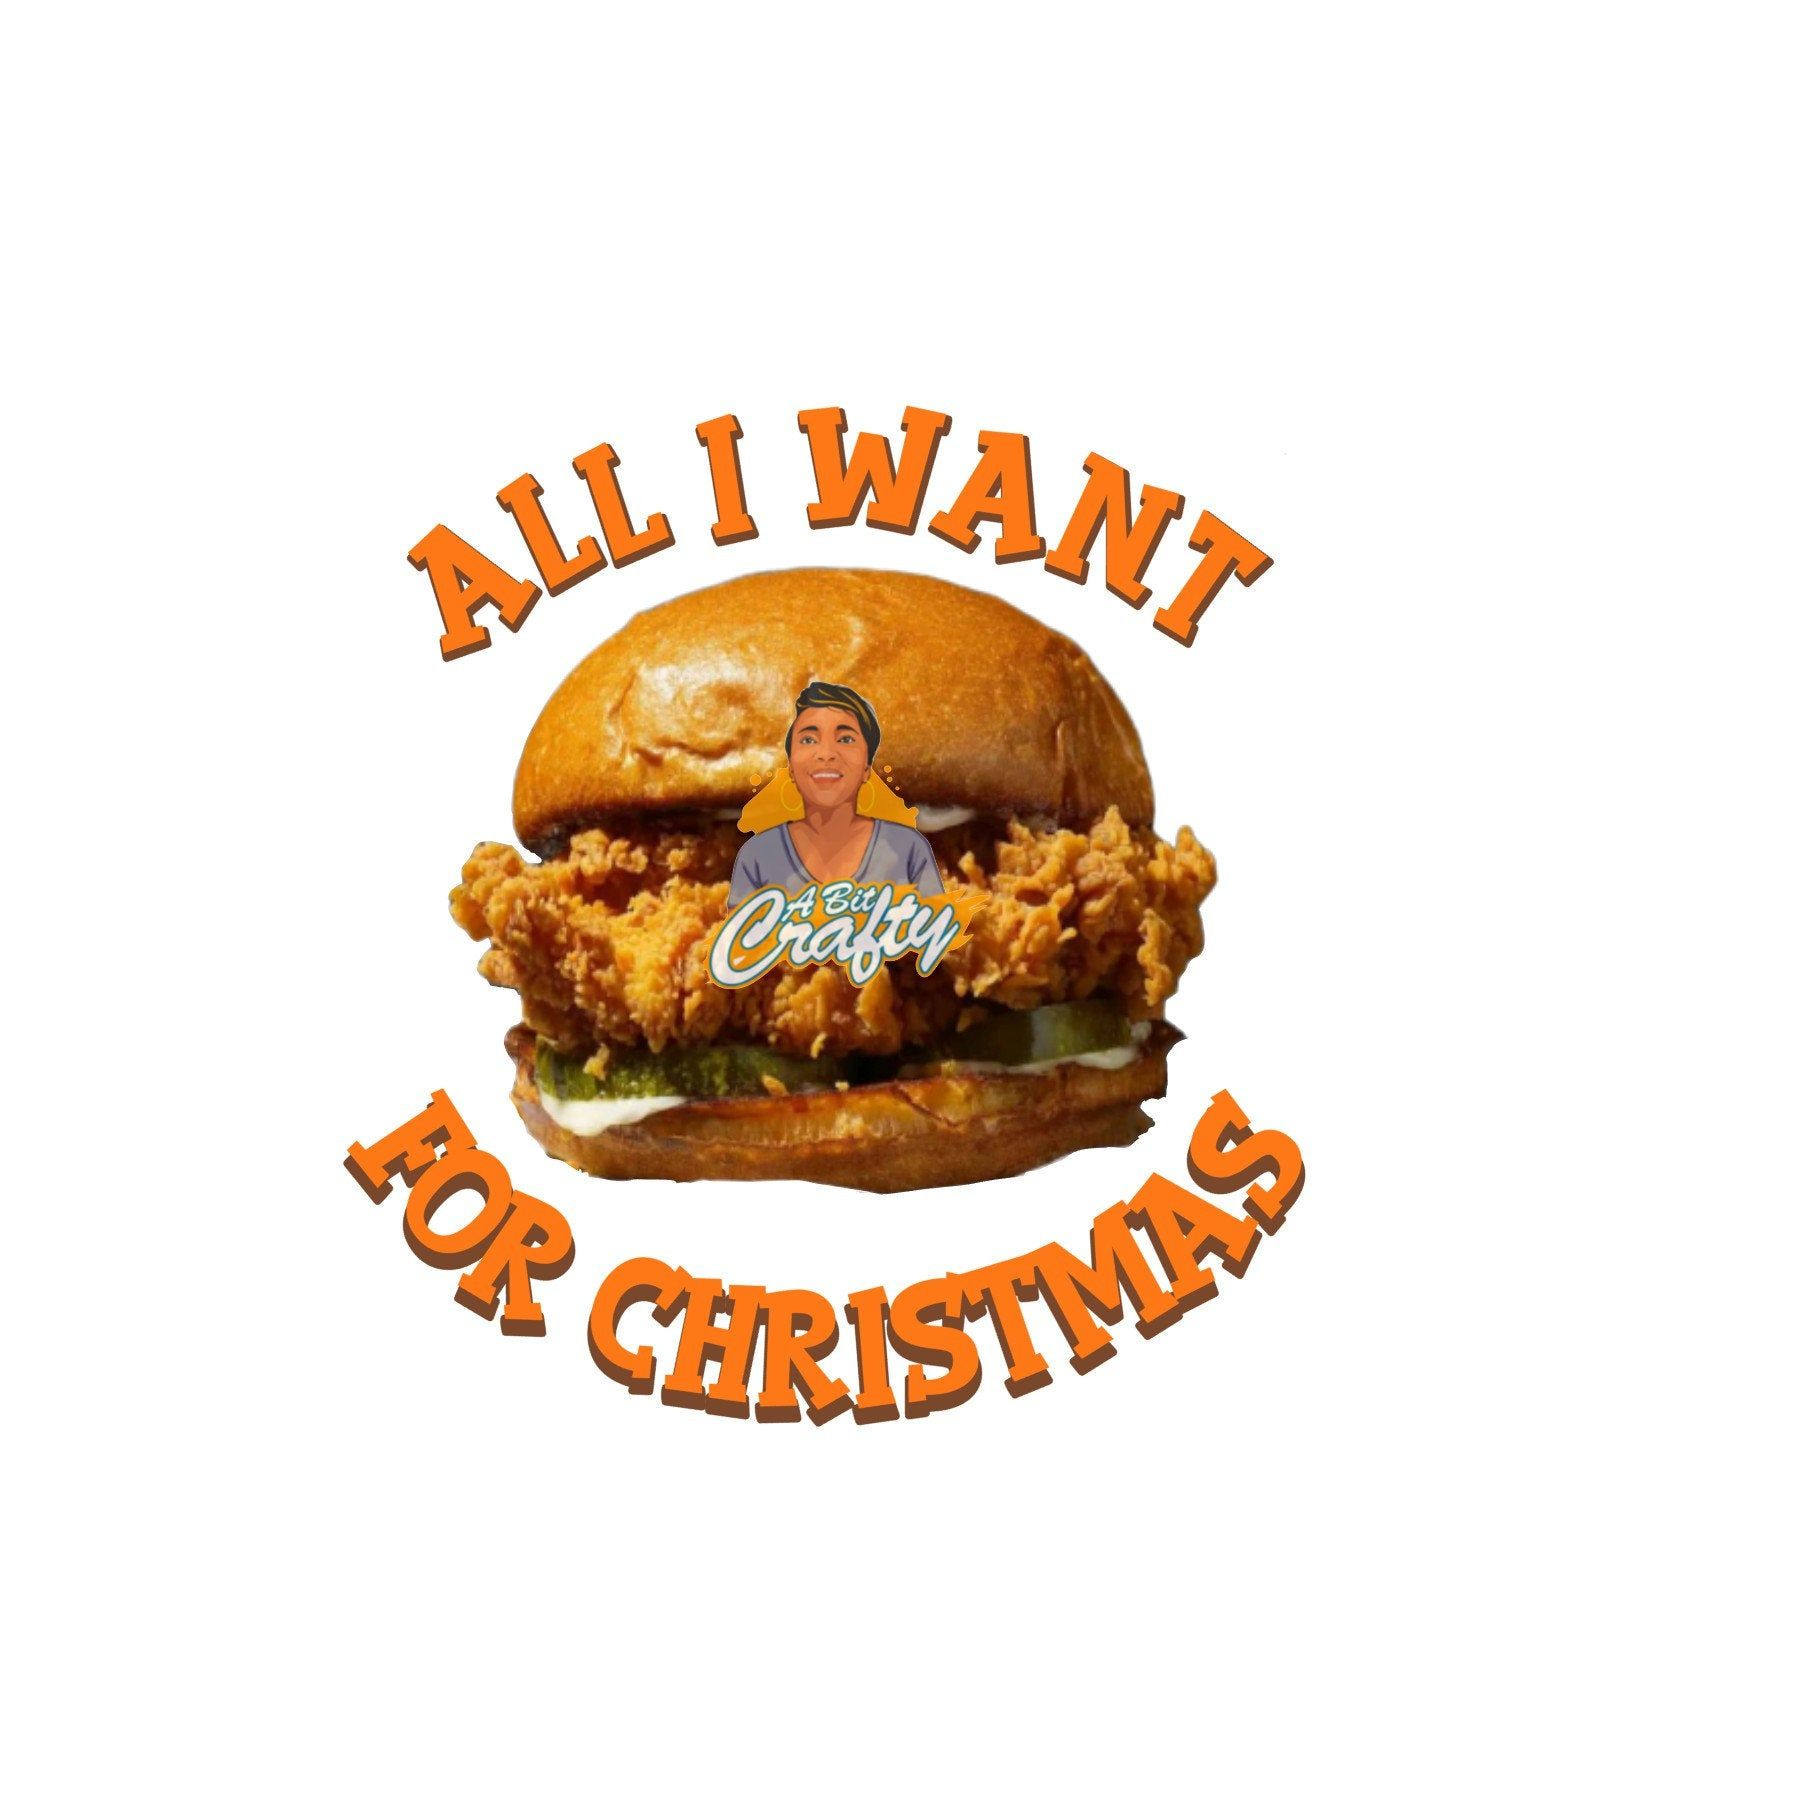 All I Want For Christmas Popeyes Chicken Sandwich Png Jpeg Sublimation Digital Download Popeyeschicken Ch Popeyes Chicken Funny Thanksgiving Things I Want